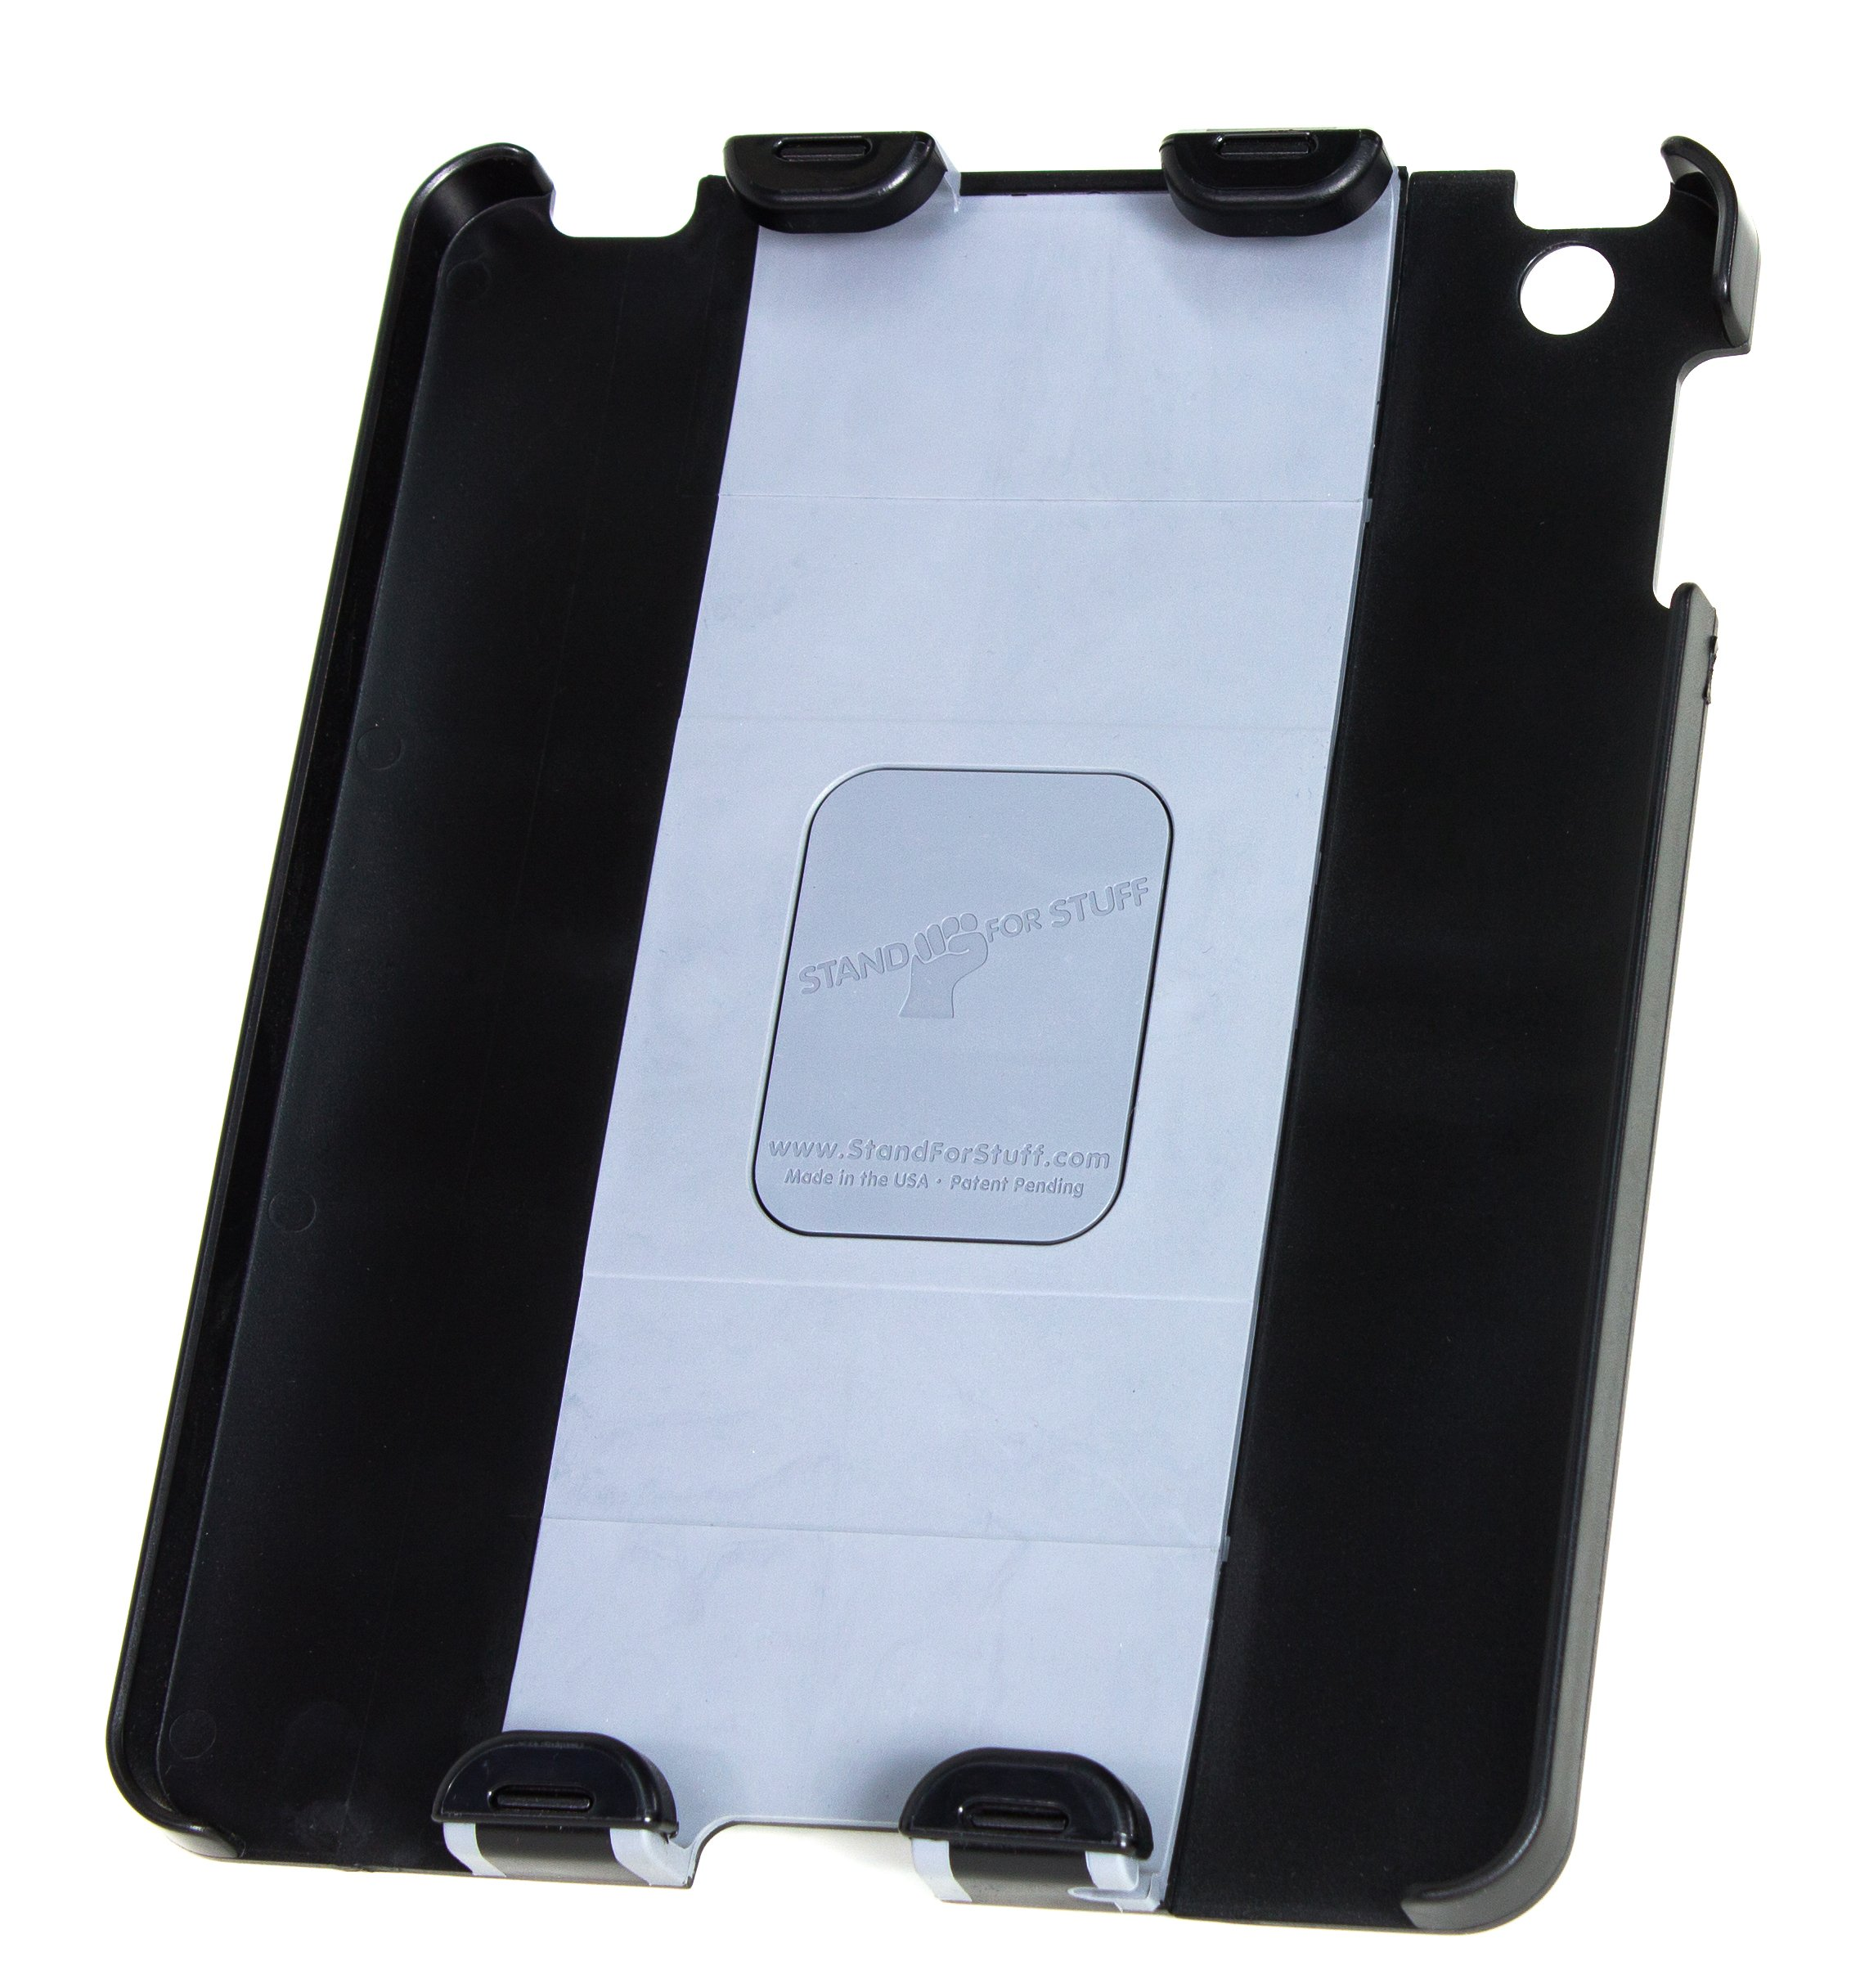 Stand For Stuff Swing Holder Head Assembly for iPad 2/3/4 (SFS-IHA-A -)